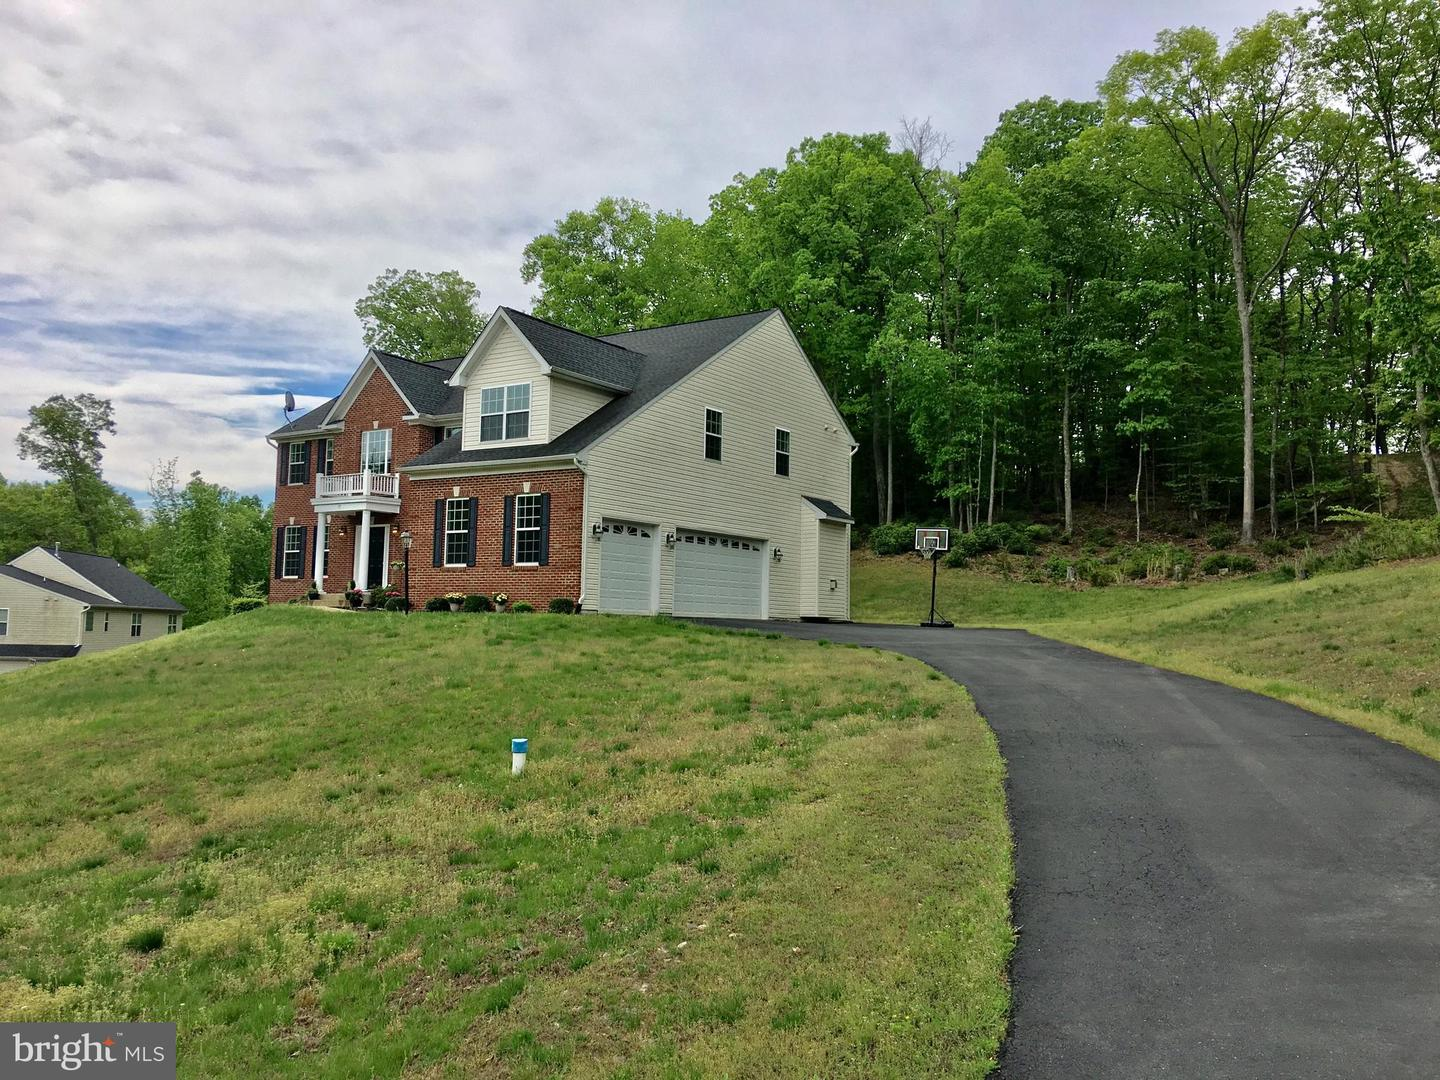 Additional photo for property listing at 79 Brooke Crest Ln 79 Brooke Crest Ln Stafford, Virginia 22554 United States